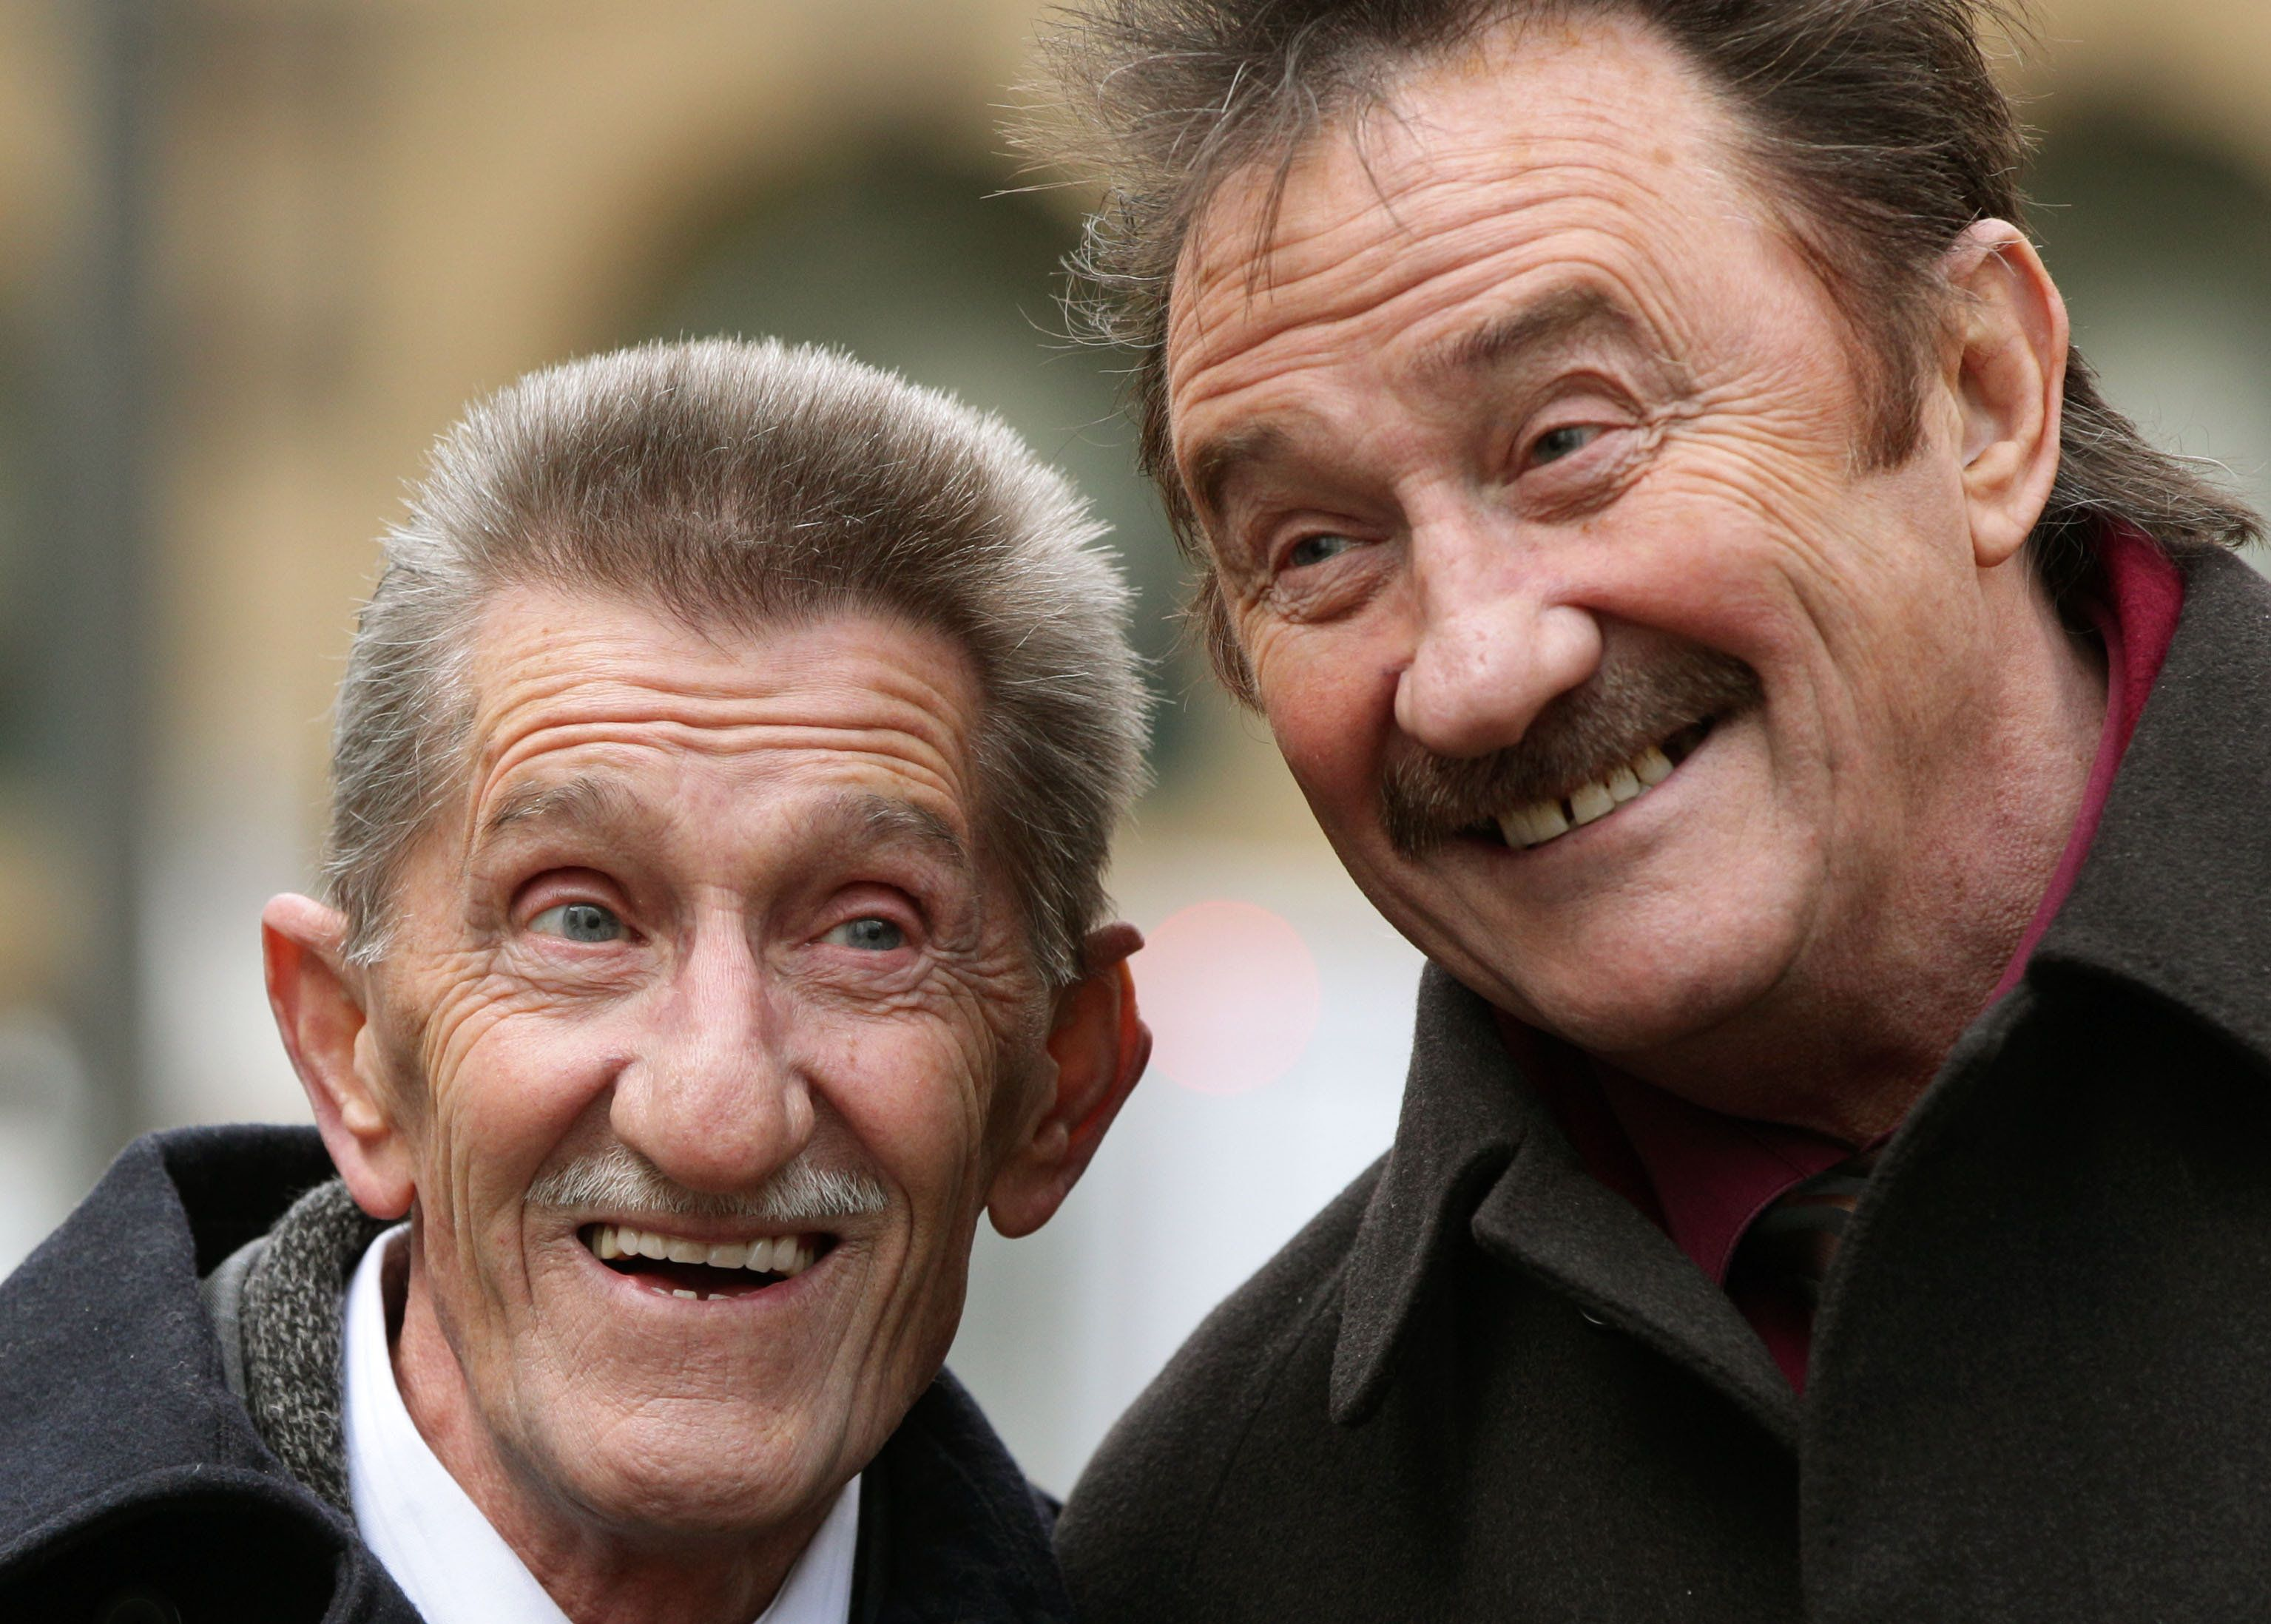 Football Fans Pay Tribute To Barry Chuckle With 'To Me, To You' Chant As Paul Chuckle Watches On